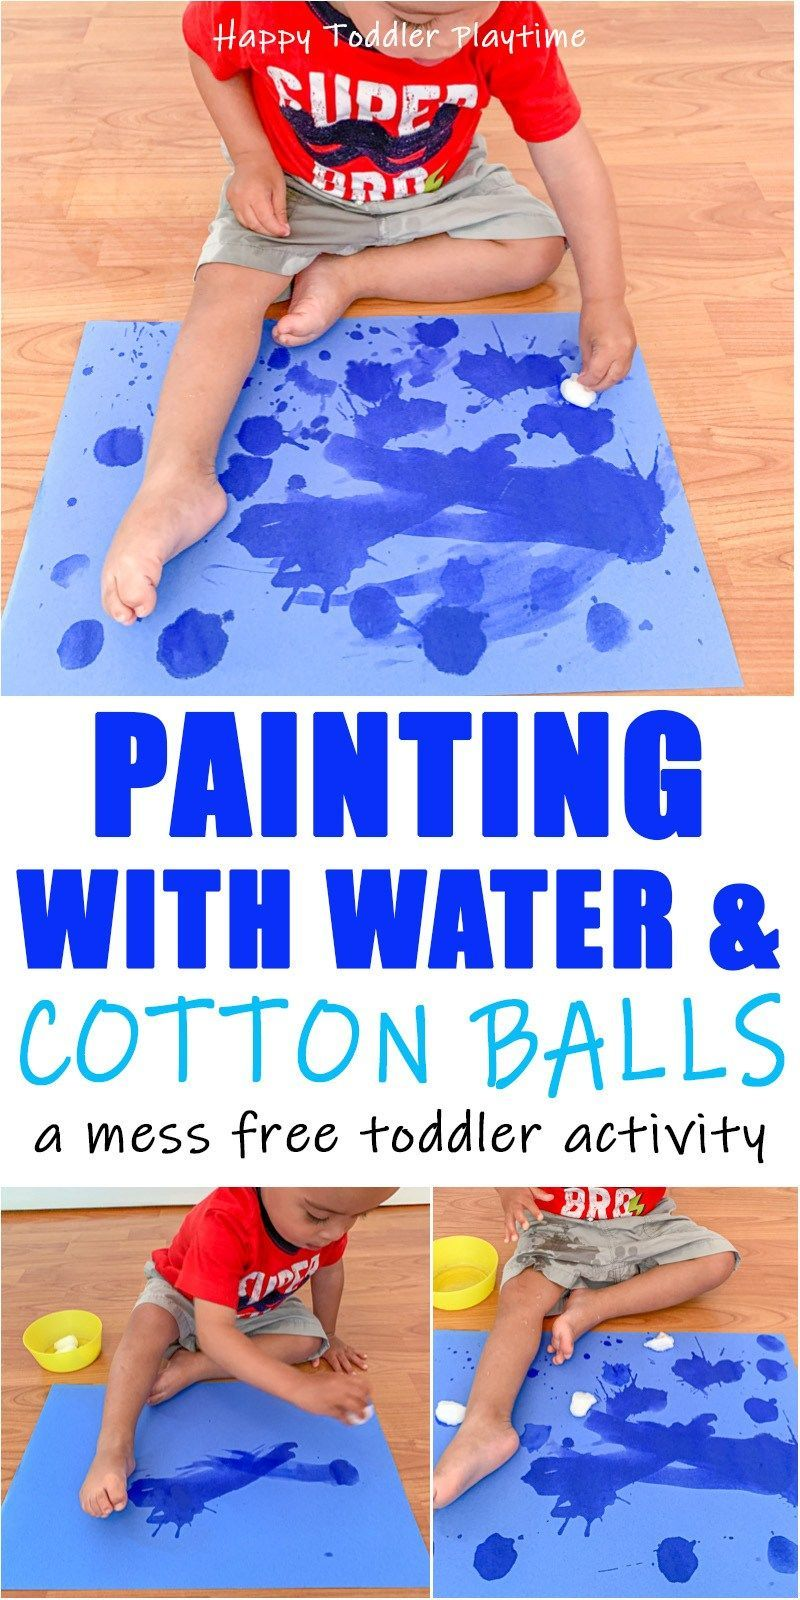 Toddler learning activities - Toddler activities - Mess free toddler activities - Daycare activi